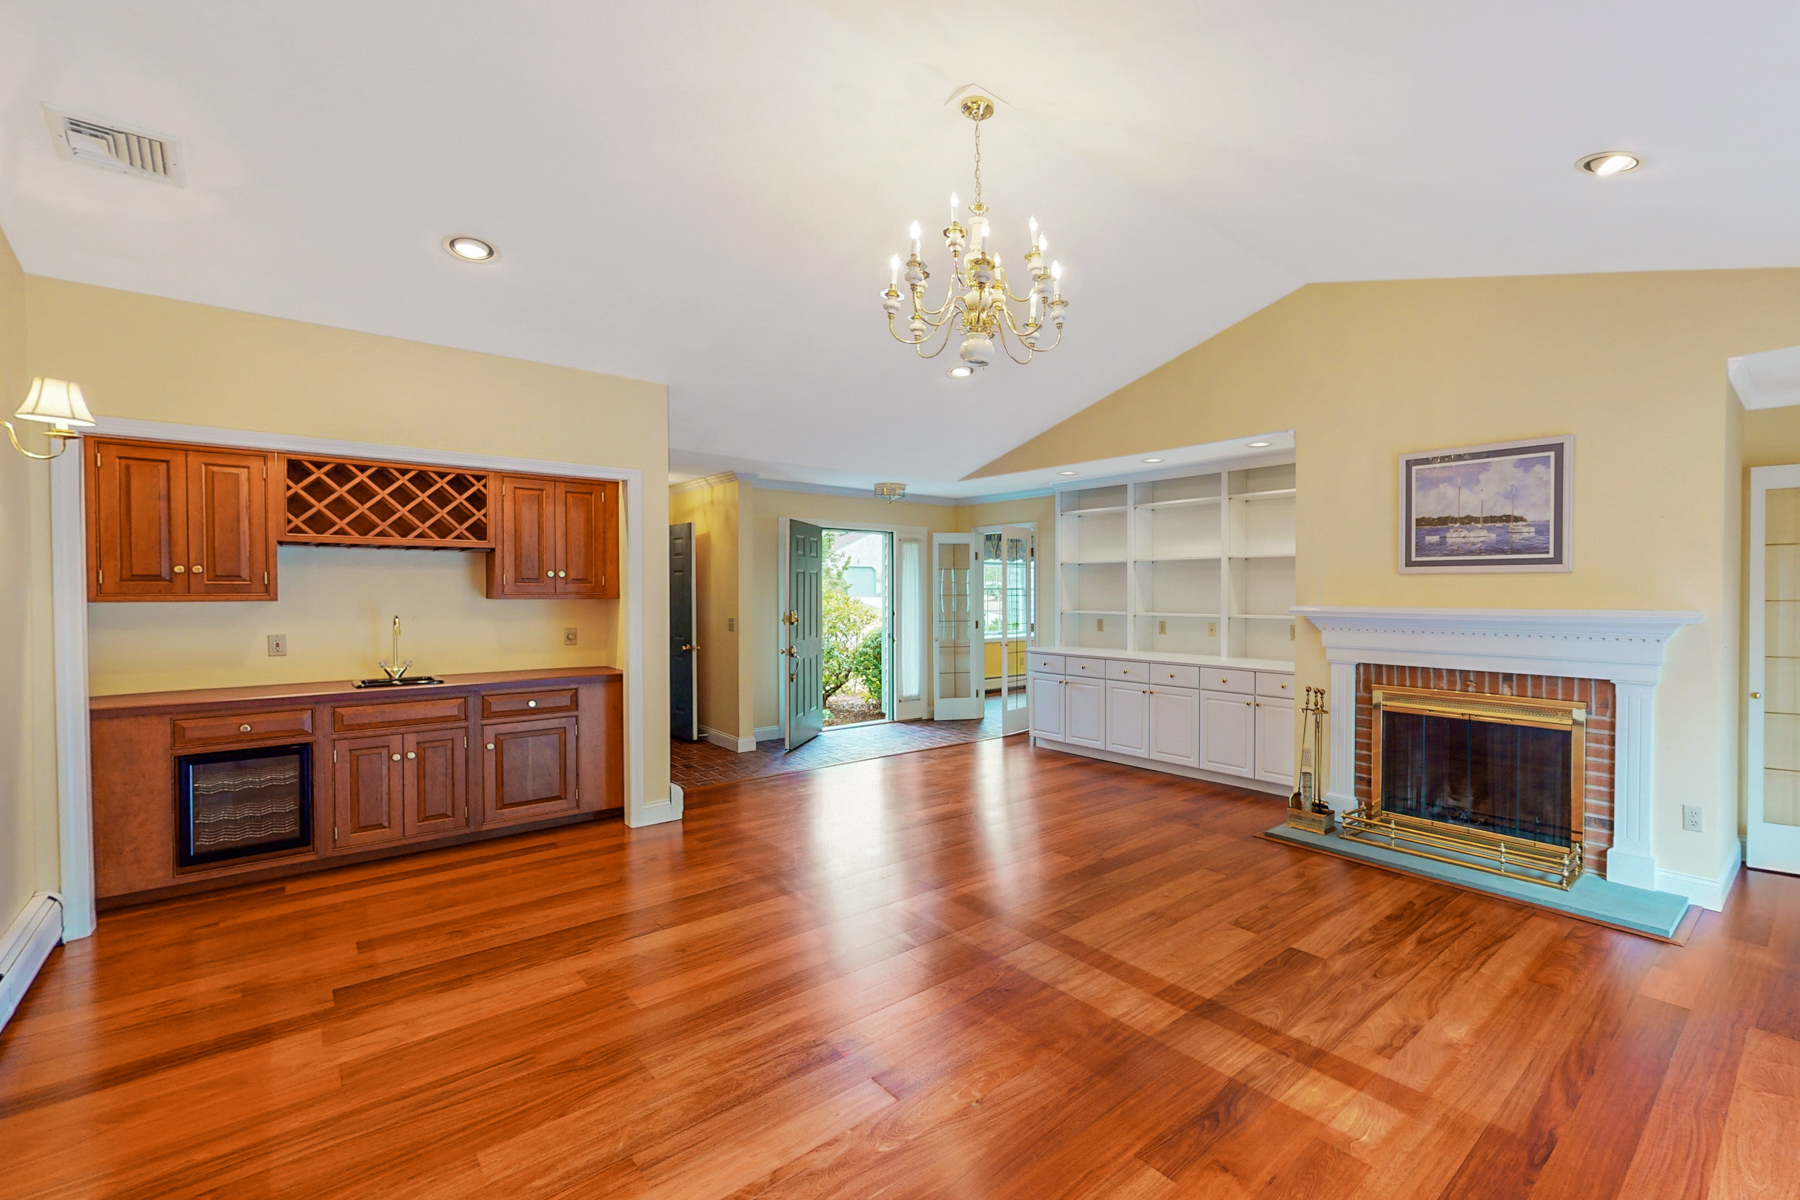 Condominiums for Sale at Single Level Condo in Quiet Community 115 Young Drive Portsmouth, Rhode Island 02871 United States